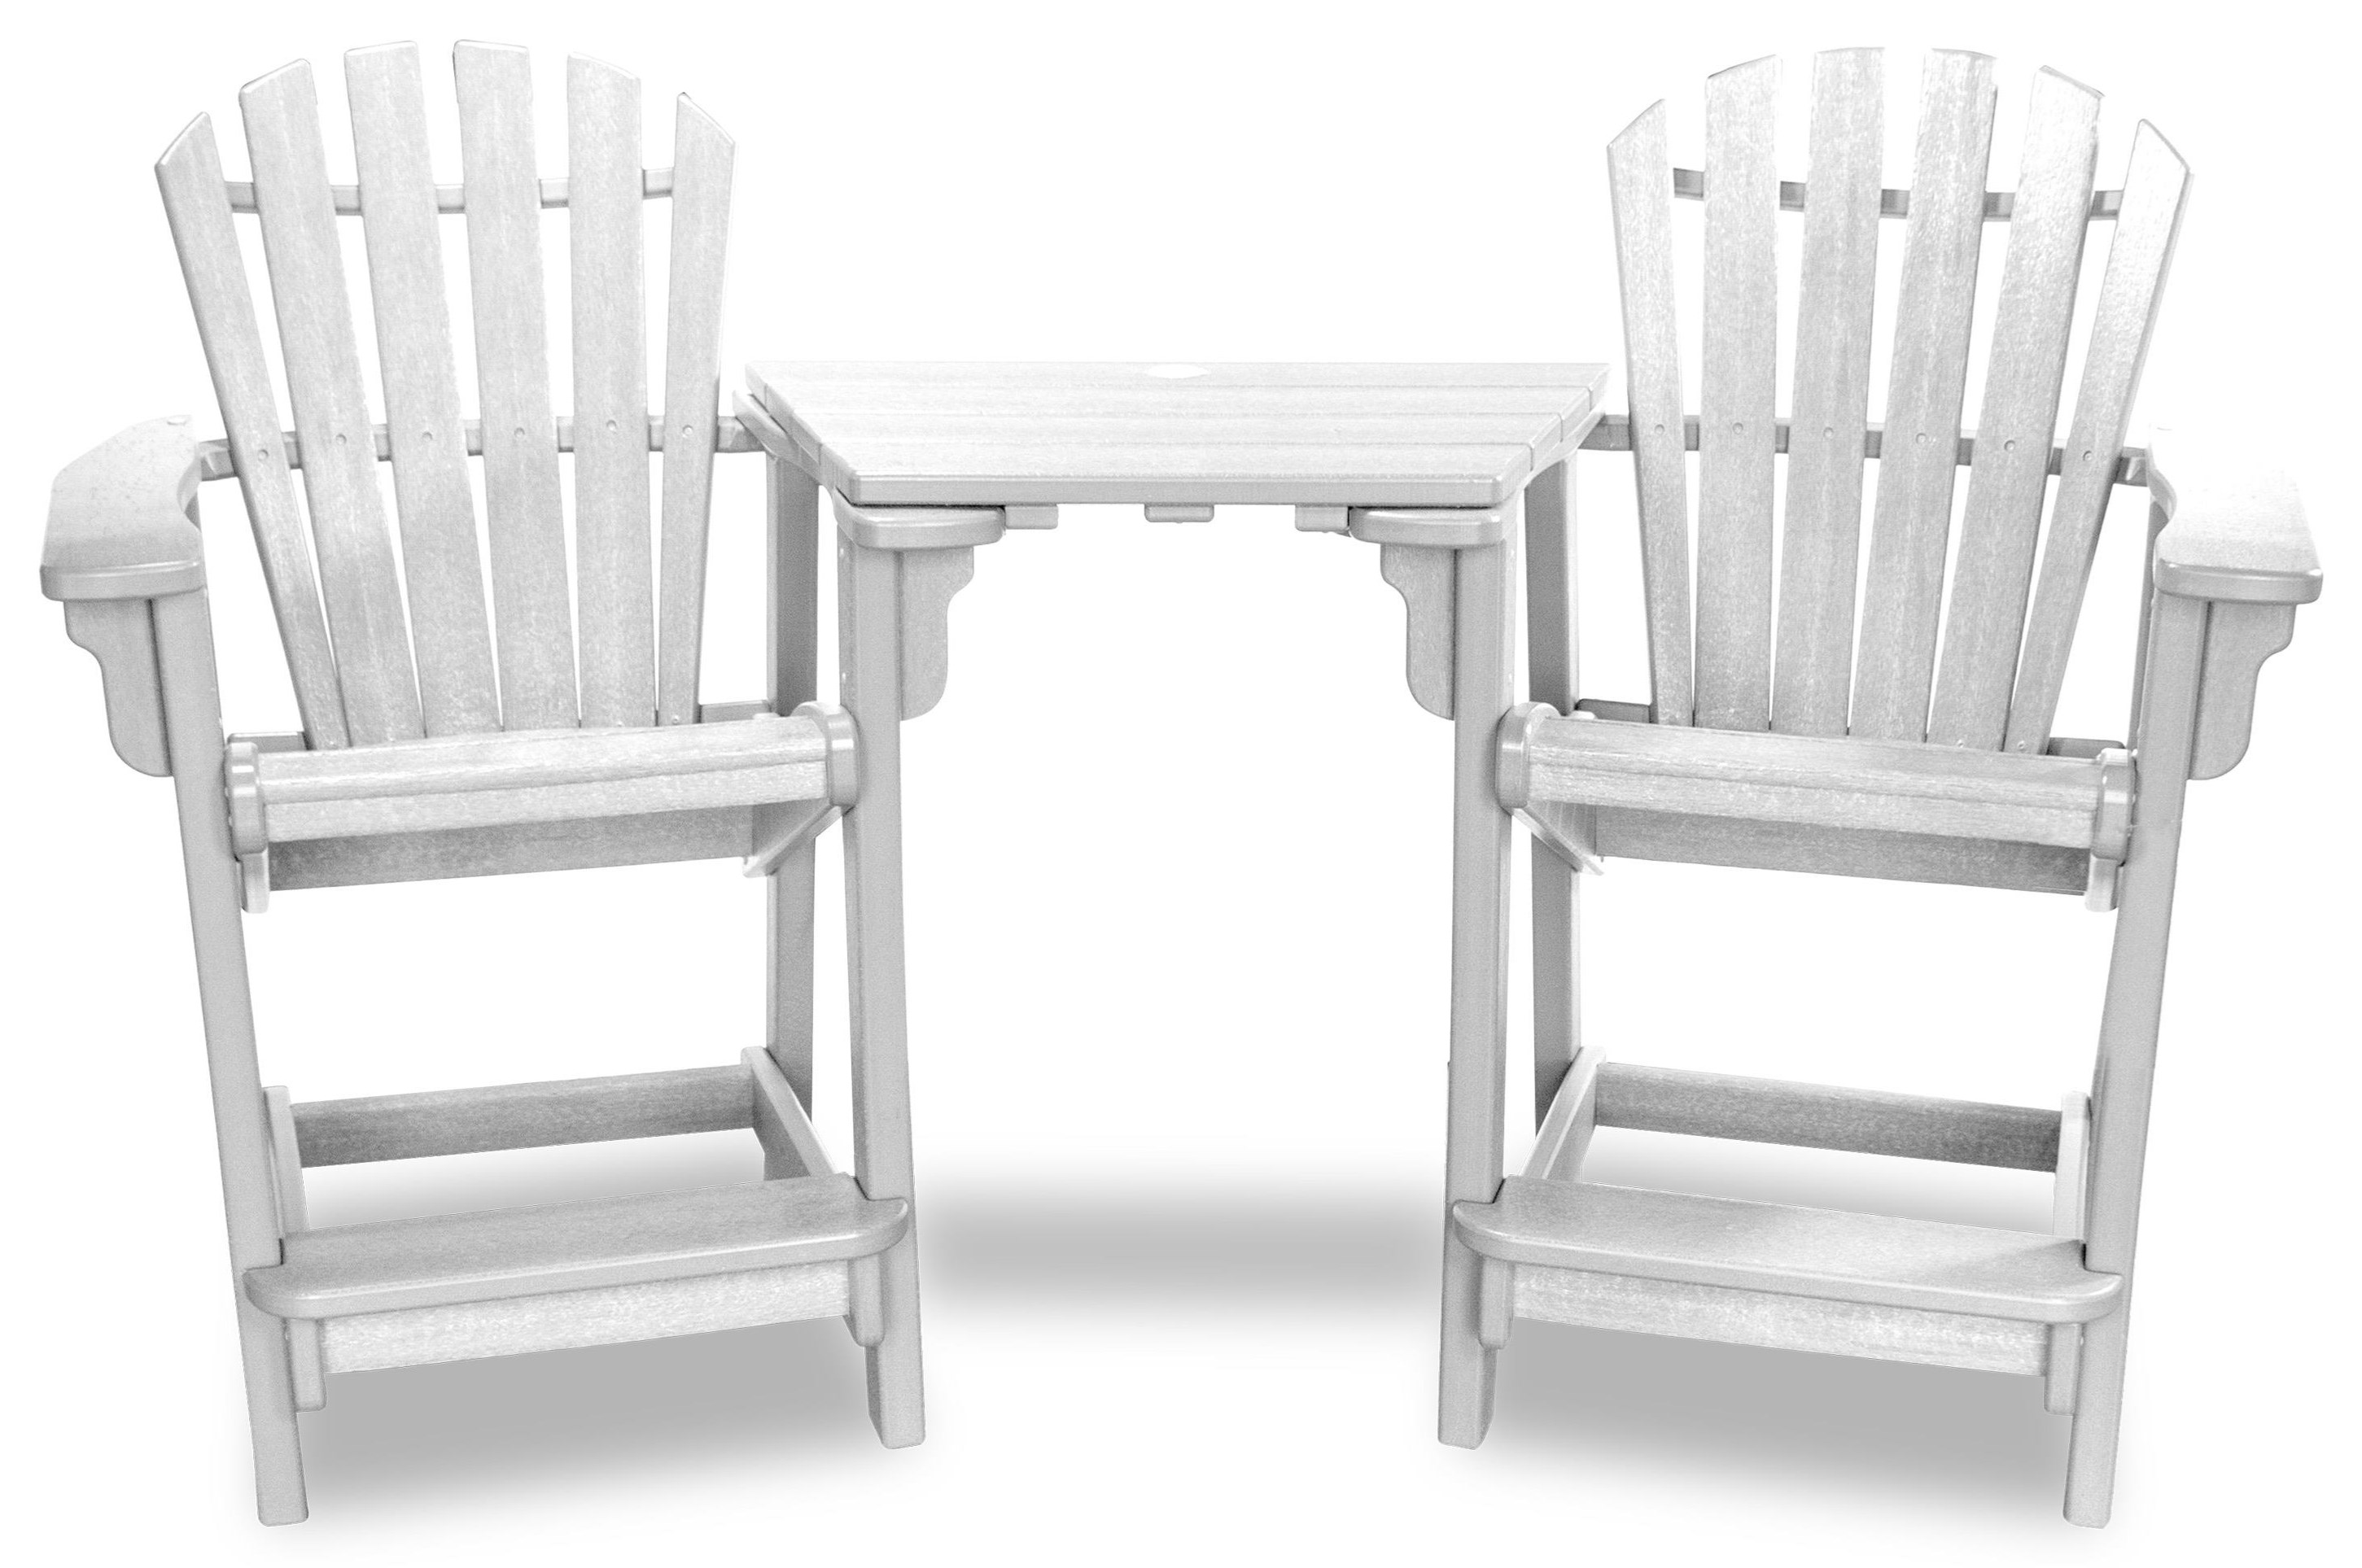 Coastal Tete-A-Tete With 2 Chairs by Breezesta at Johnny Janosik